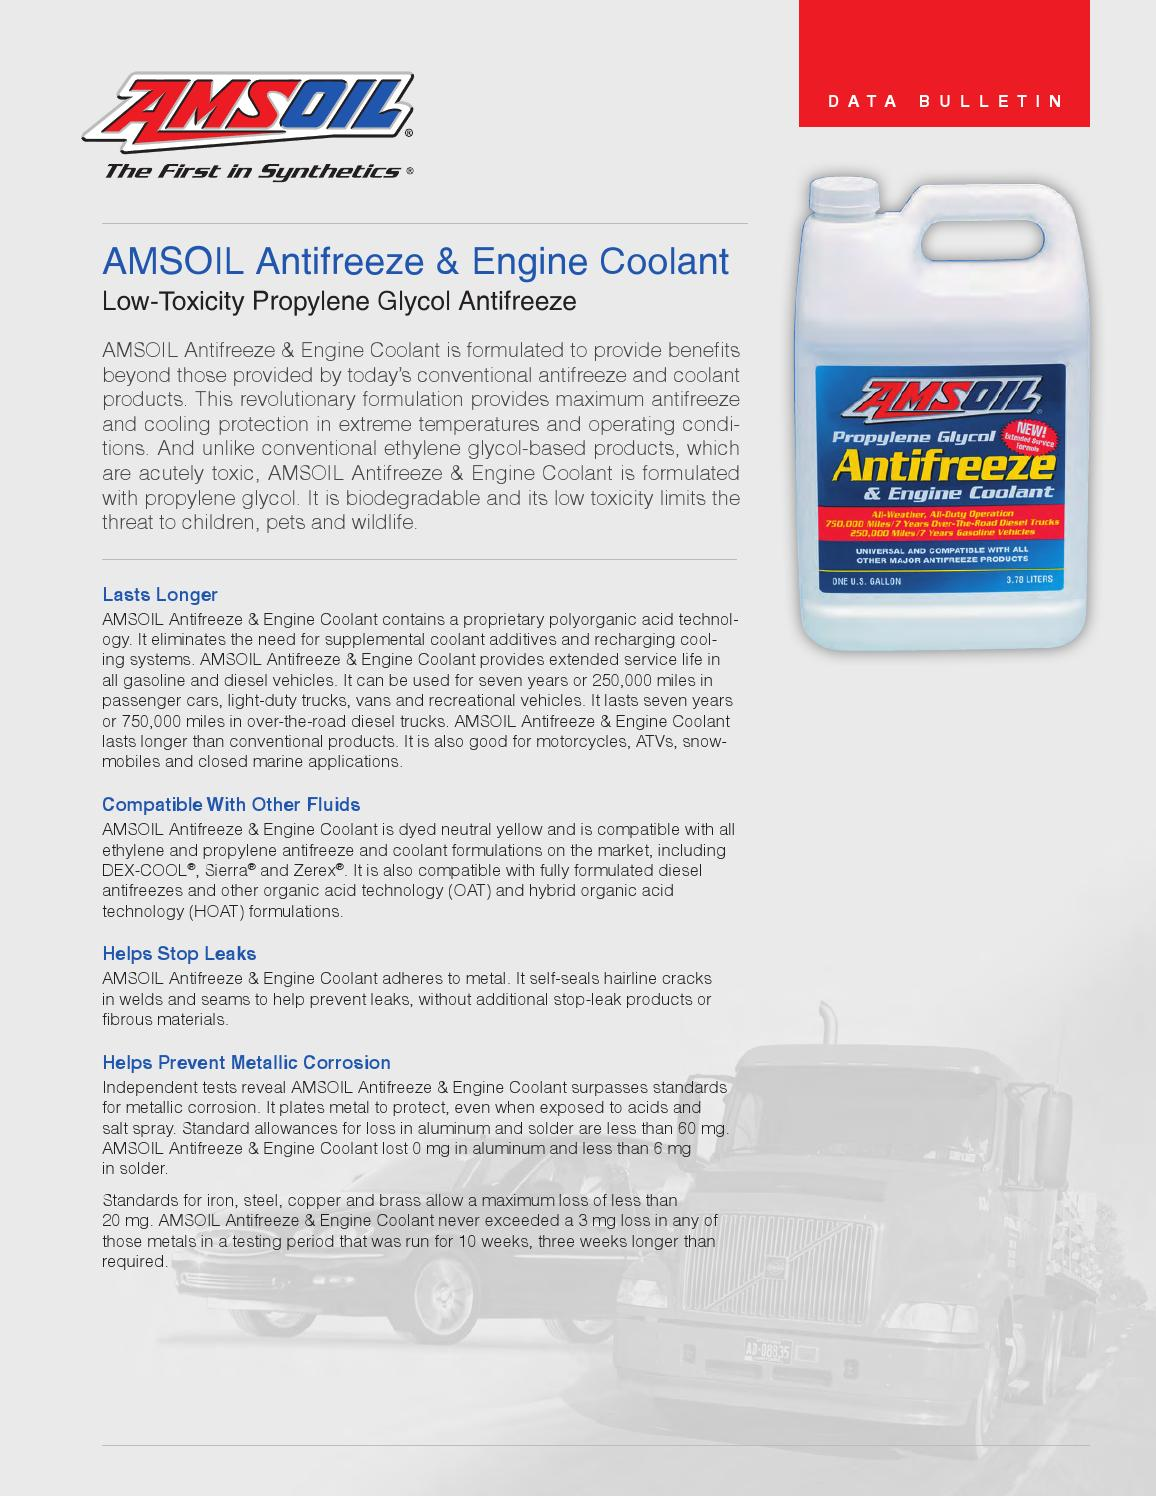 Amsoil Antifreeze Engine Coolant Biodegradable By Stevenfedor Issuu Corrosion Around